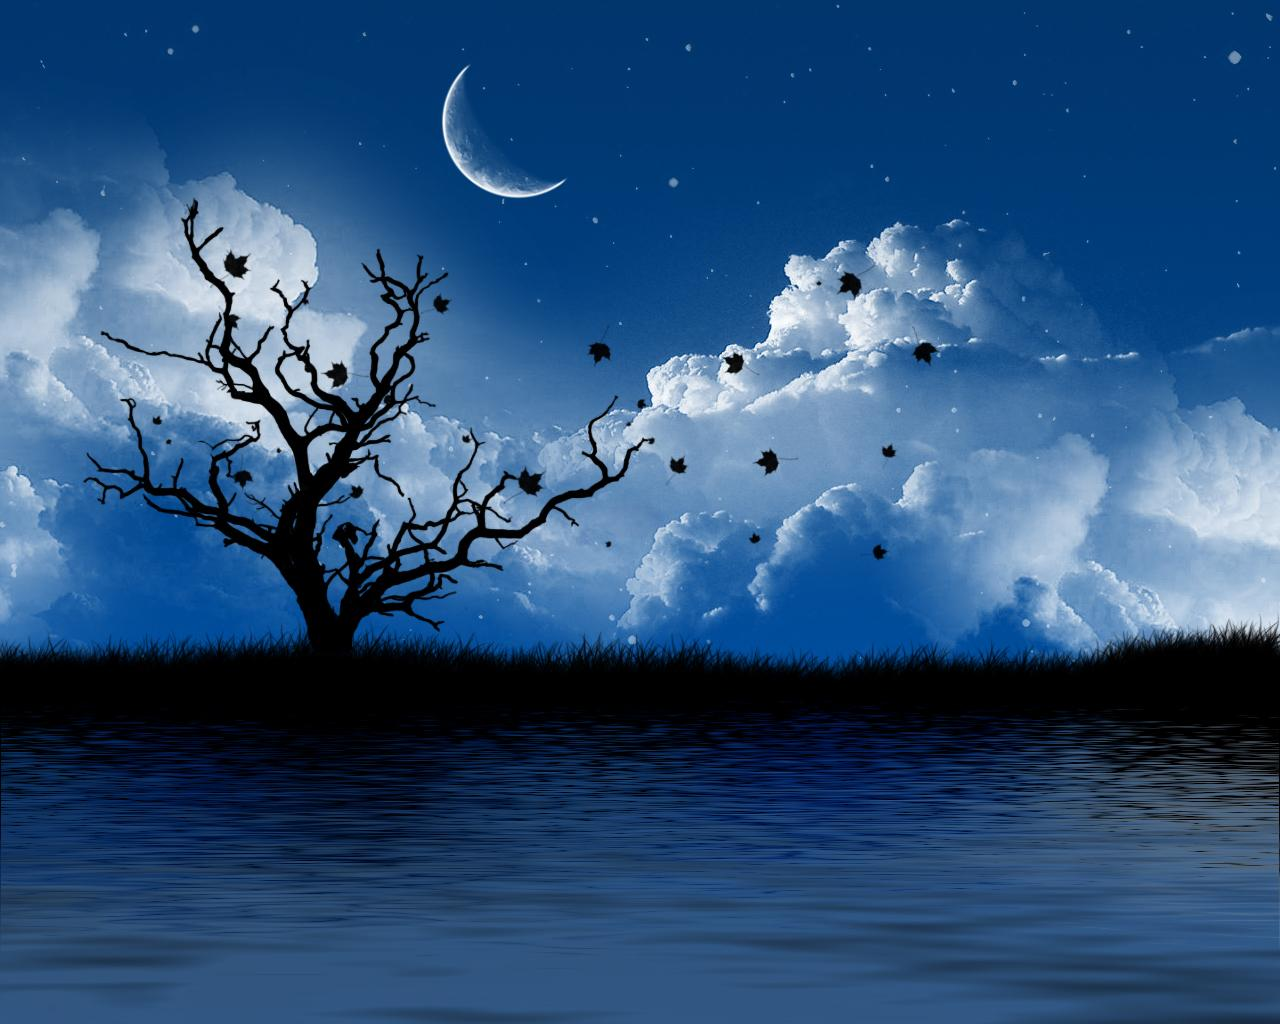 http://3.bp.blogspot.com/-9zWIcwqe44o/TVutFIn-FPI/AAAAAAAAAg4/Znb0phltjDc/s1600/wallpaper-tree-pictures-romantic-artistic-night.jpg